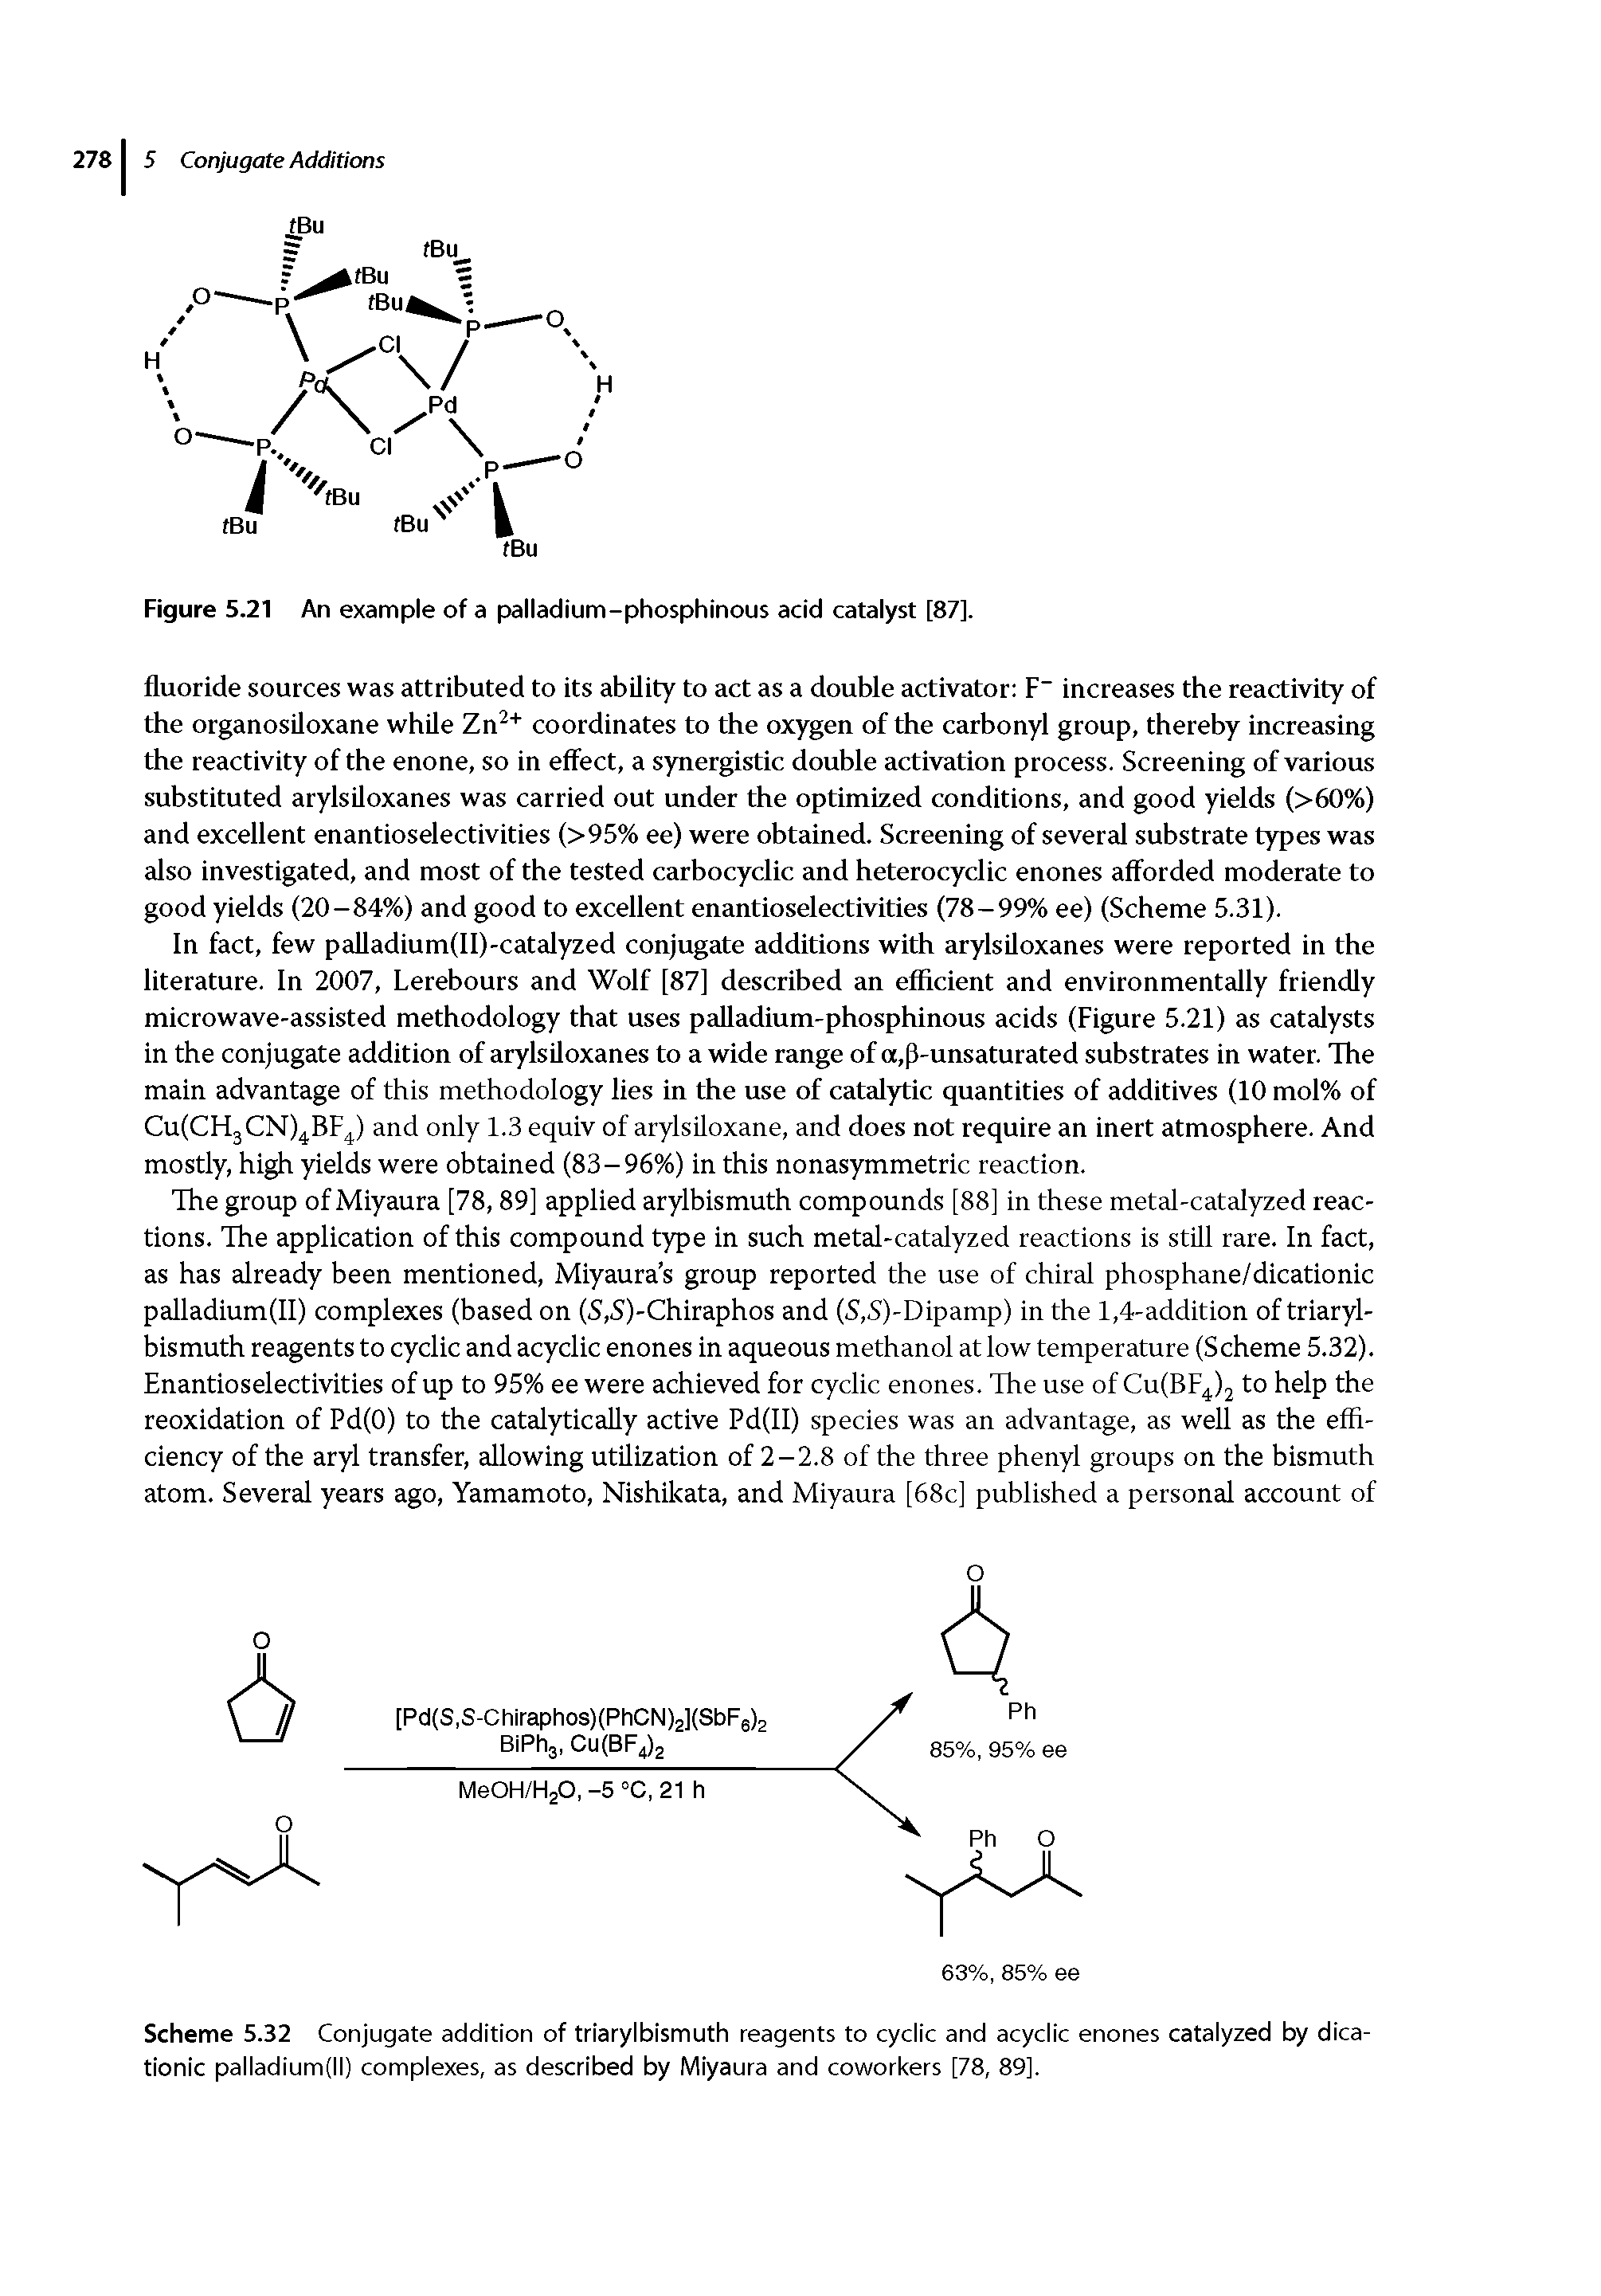 Figure 5.21 An example of a palladium-phosphinous acid catalyst [87].